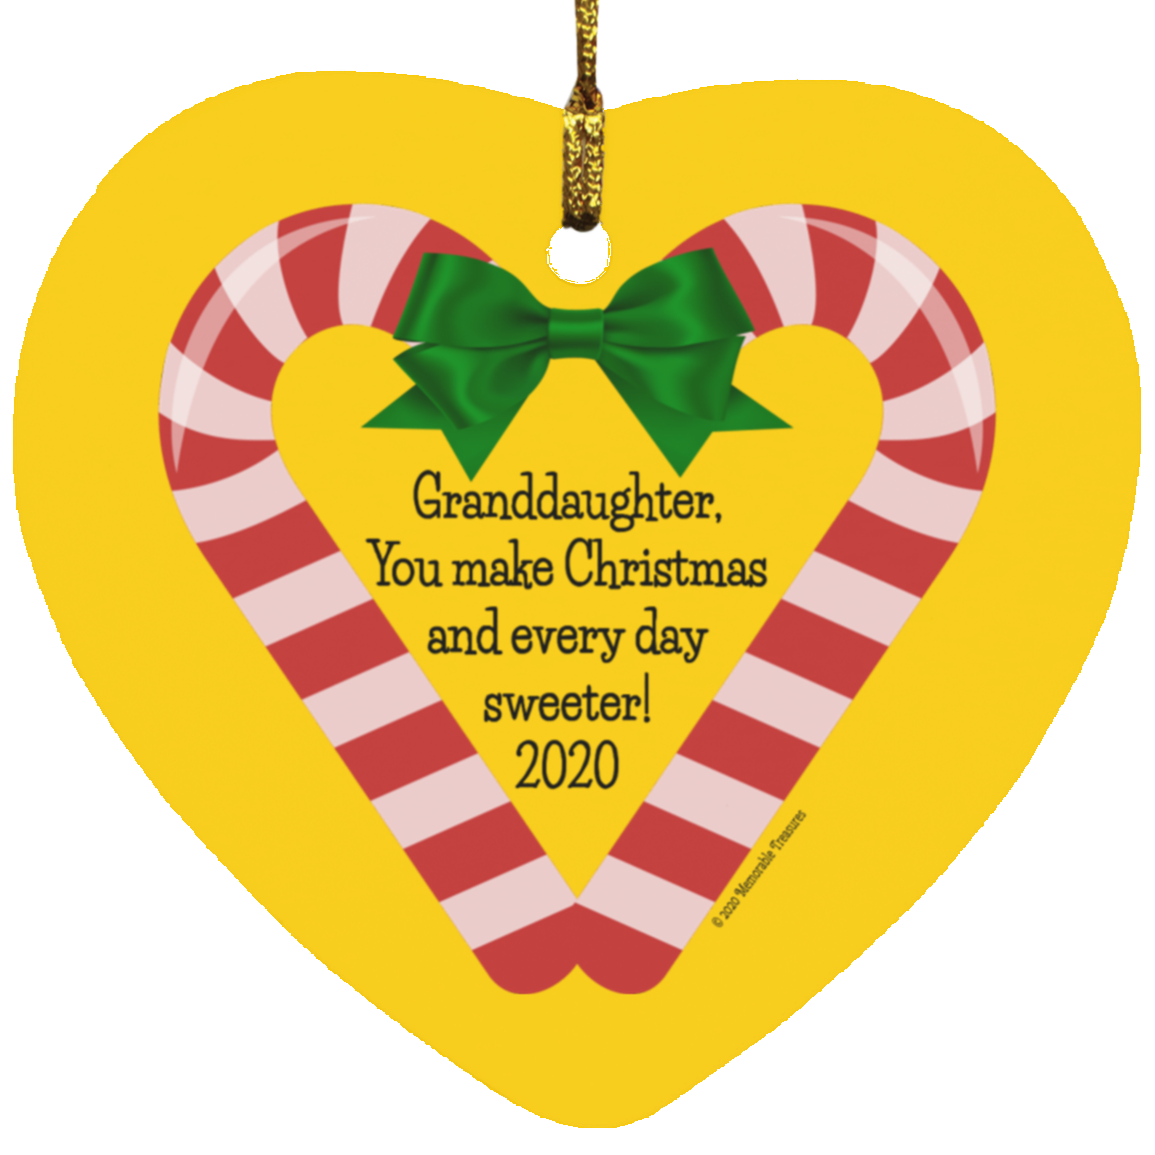 Housewares Granddaughter, You Make Christmas and Every Day Sweeter! 2020 Ornament - Memorable Treasures